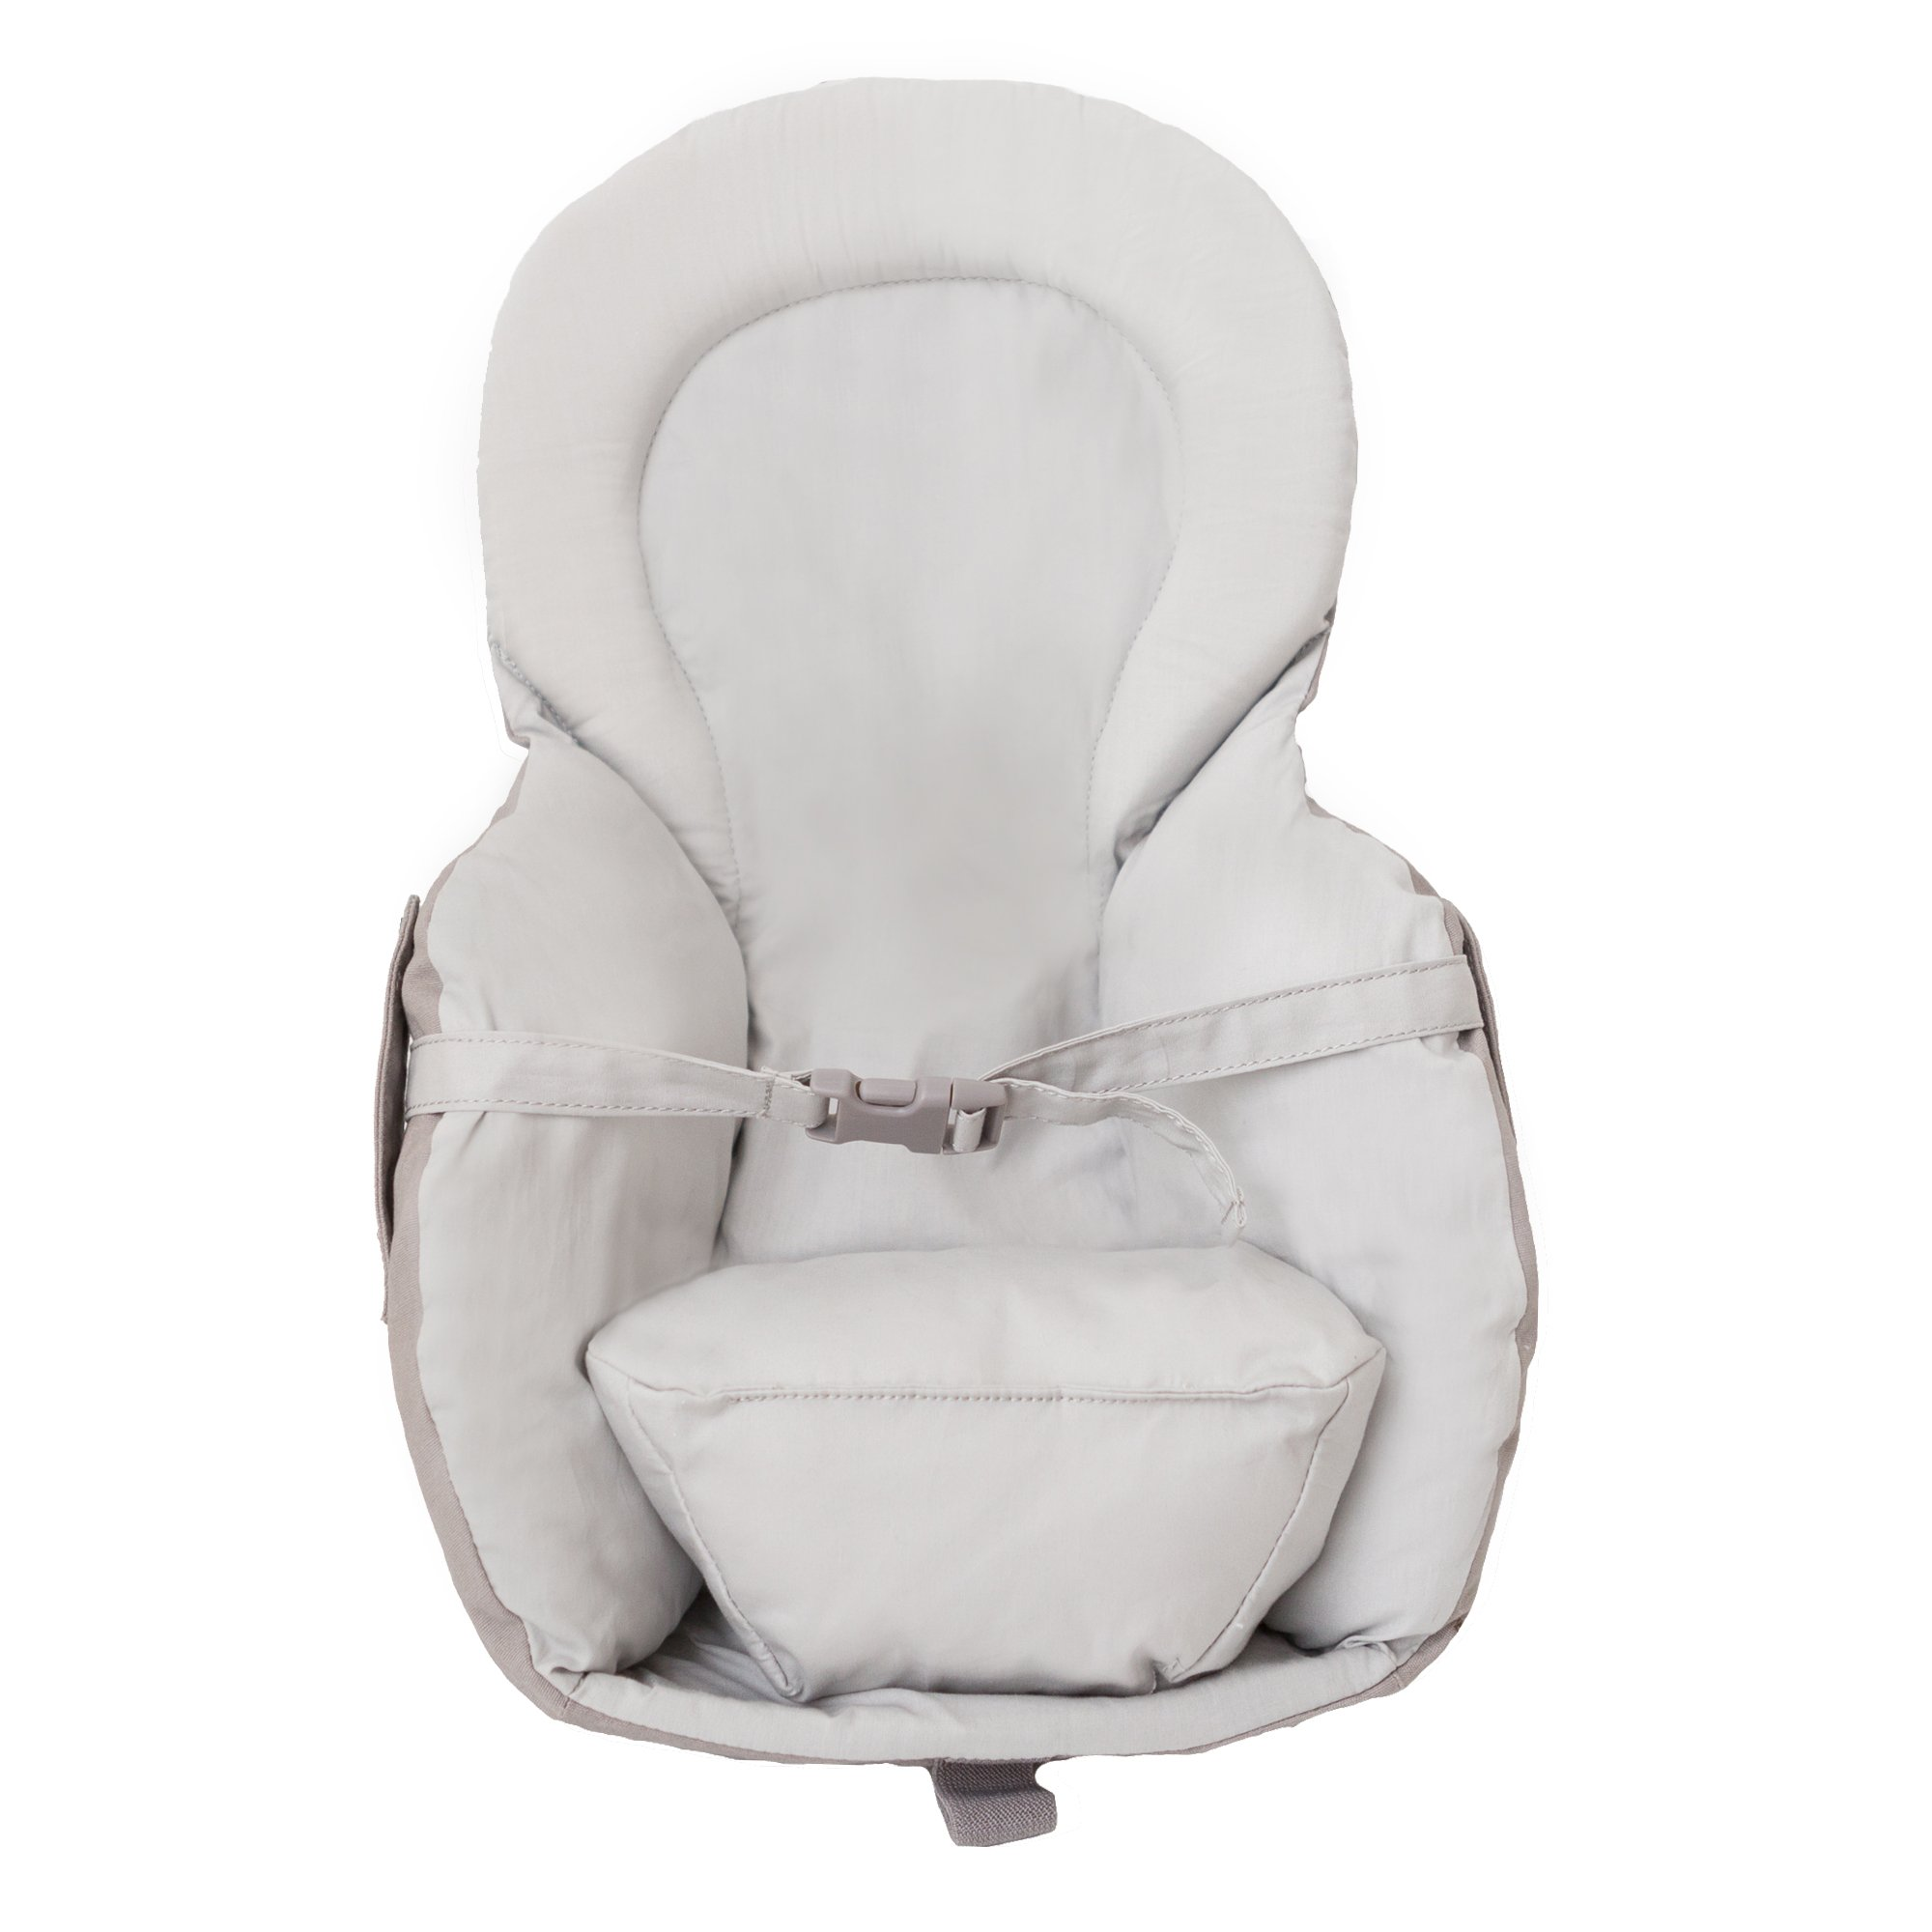 LÍLLÉbaby Infant Insert, Grey - Ergonomic Insert with Removeable Pillow for Baby Carrier